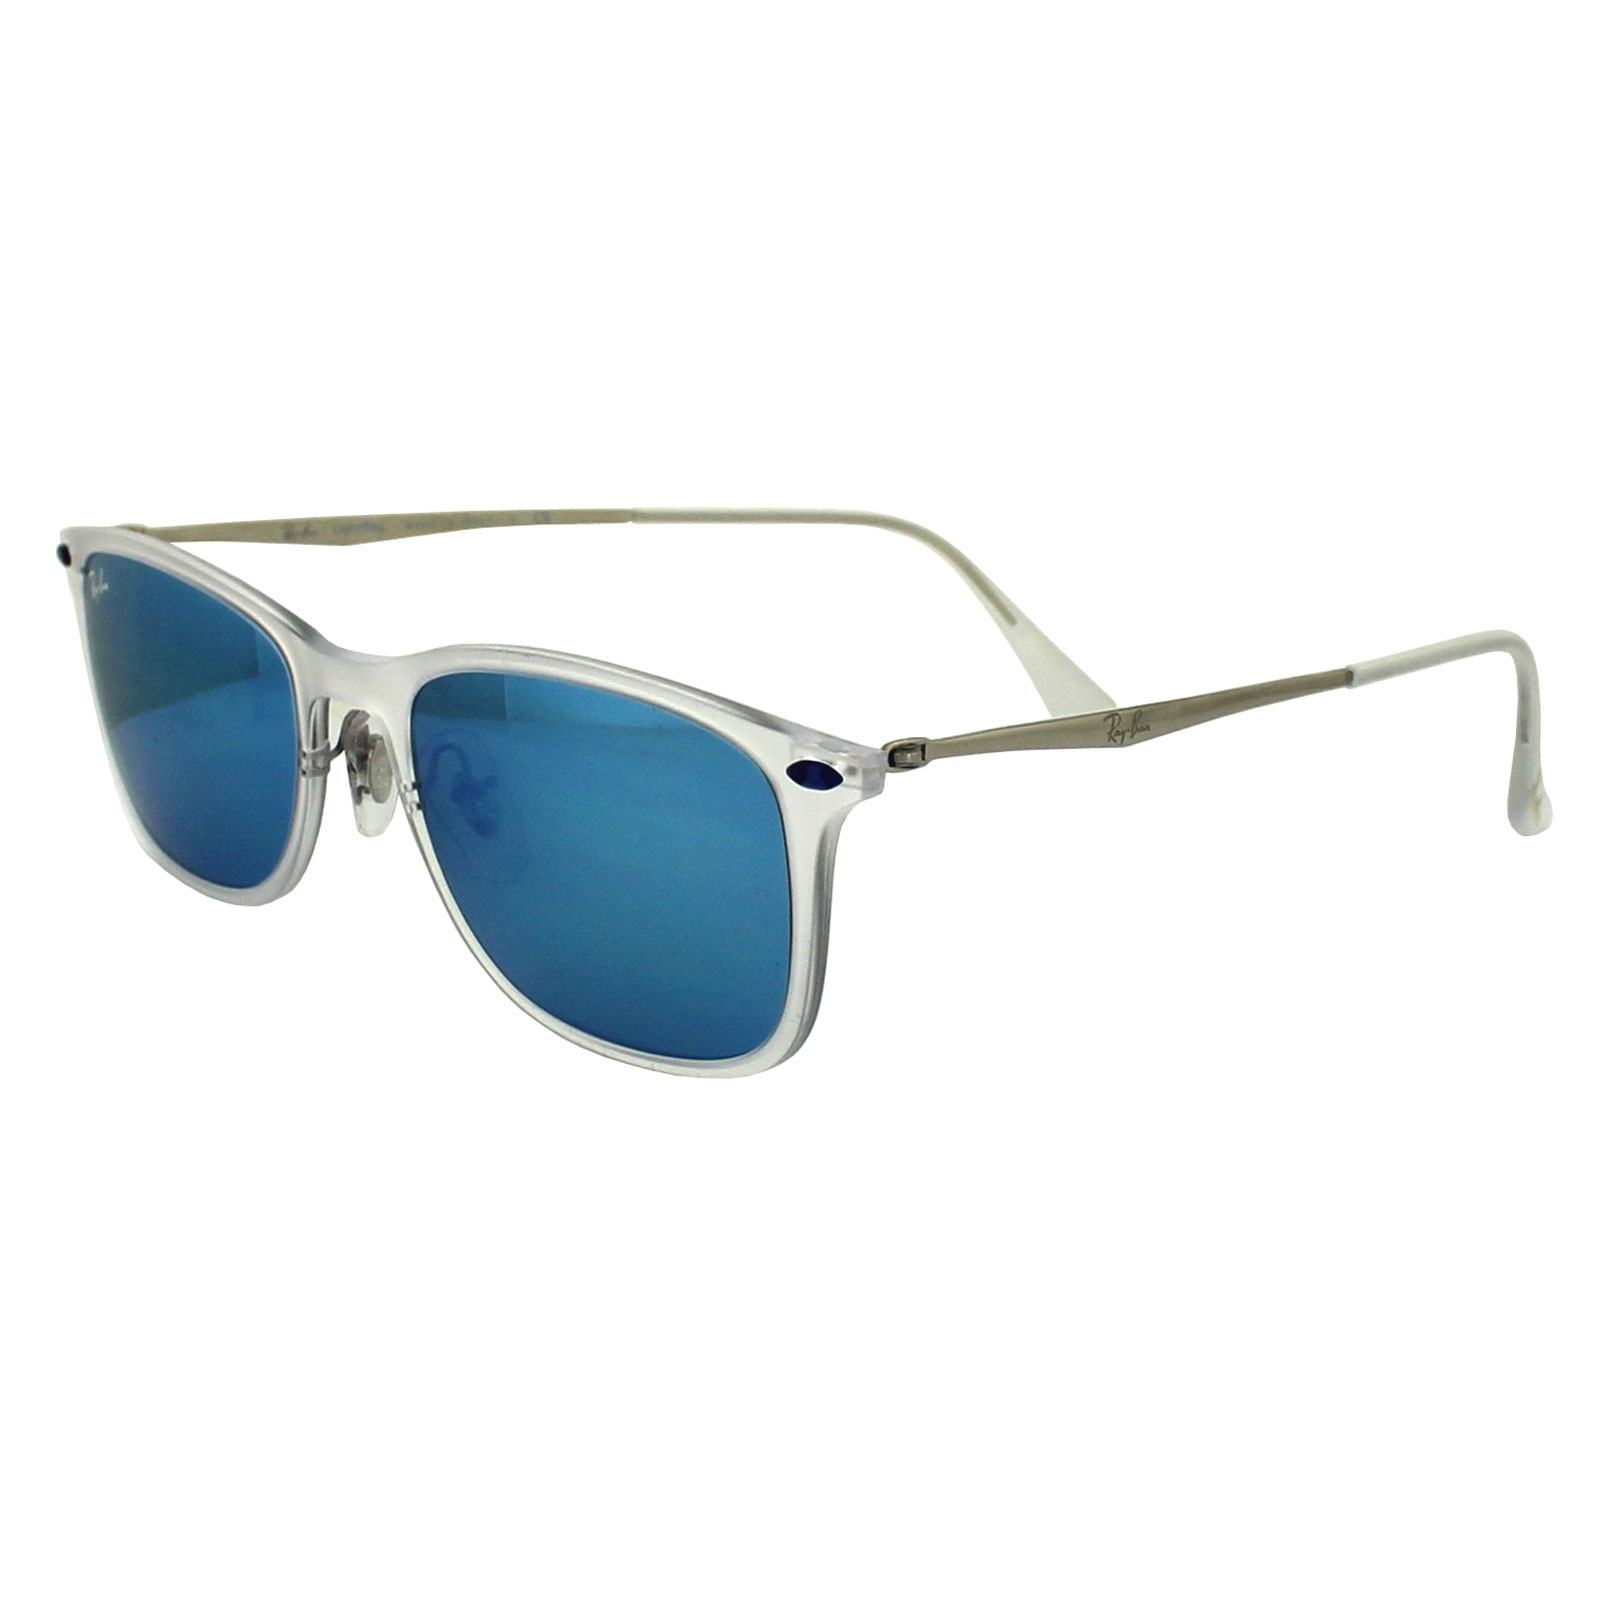 RB_DUBOLHN295,Cheap Ray-Ban New Wayfarer Light Ray 4225 Sunglasses \u2013 Discounted \u2026